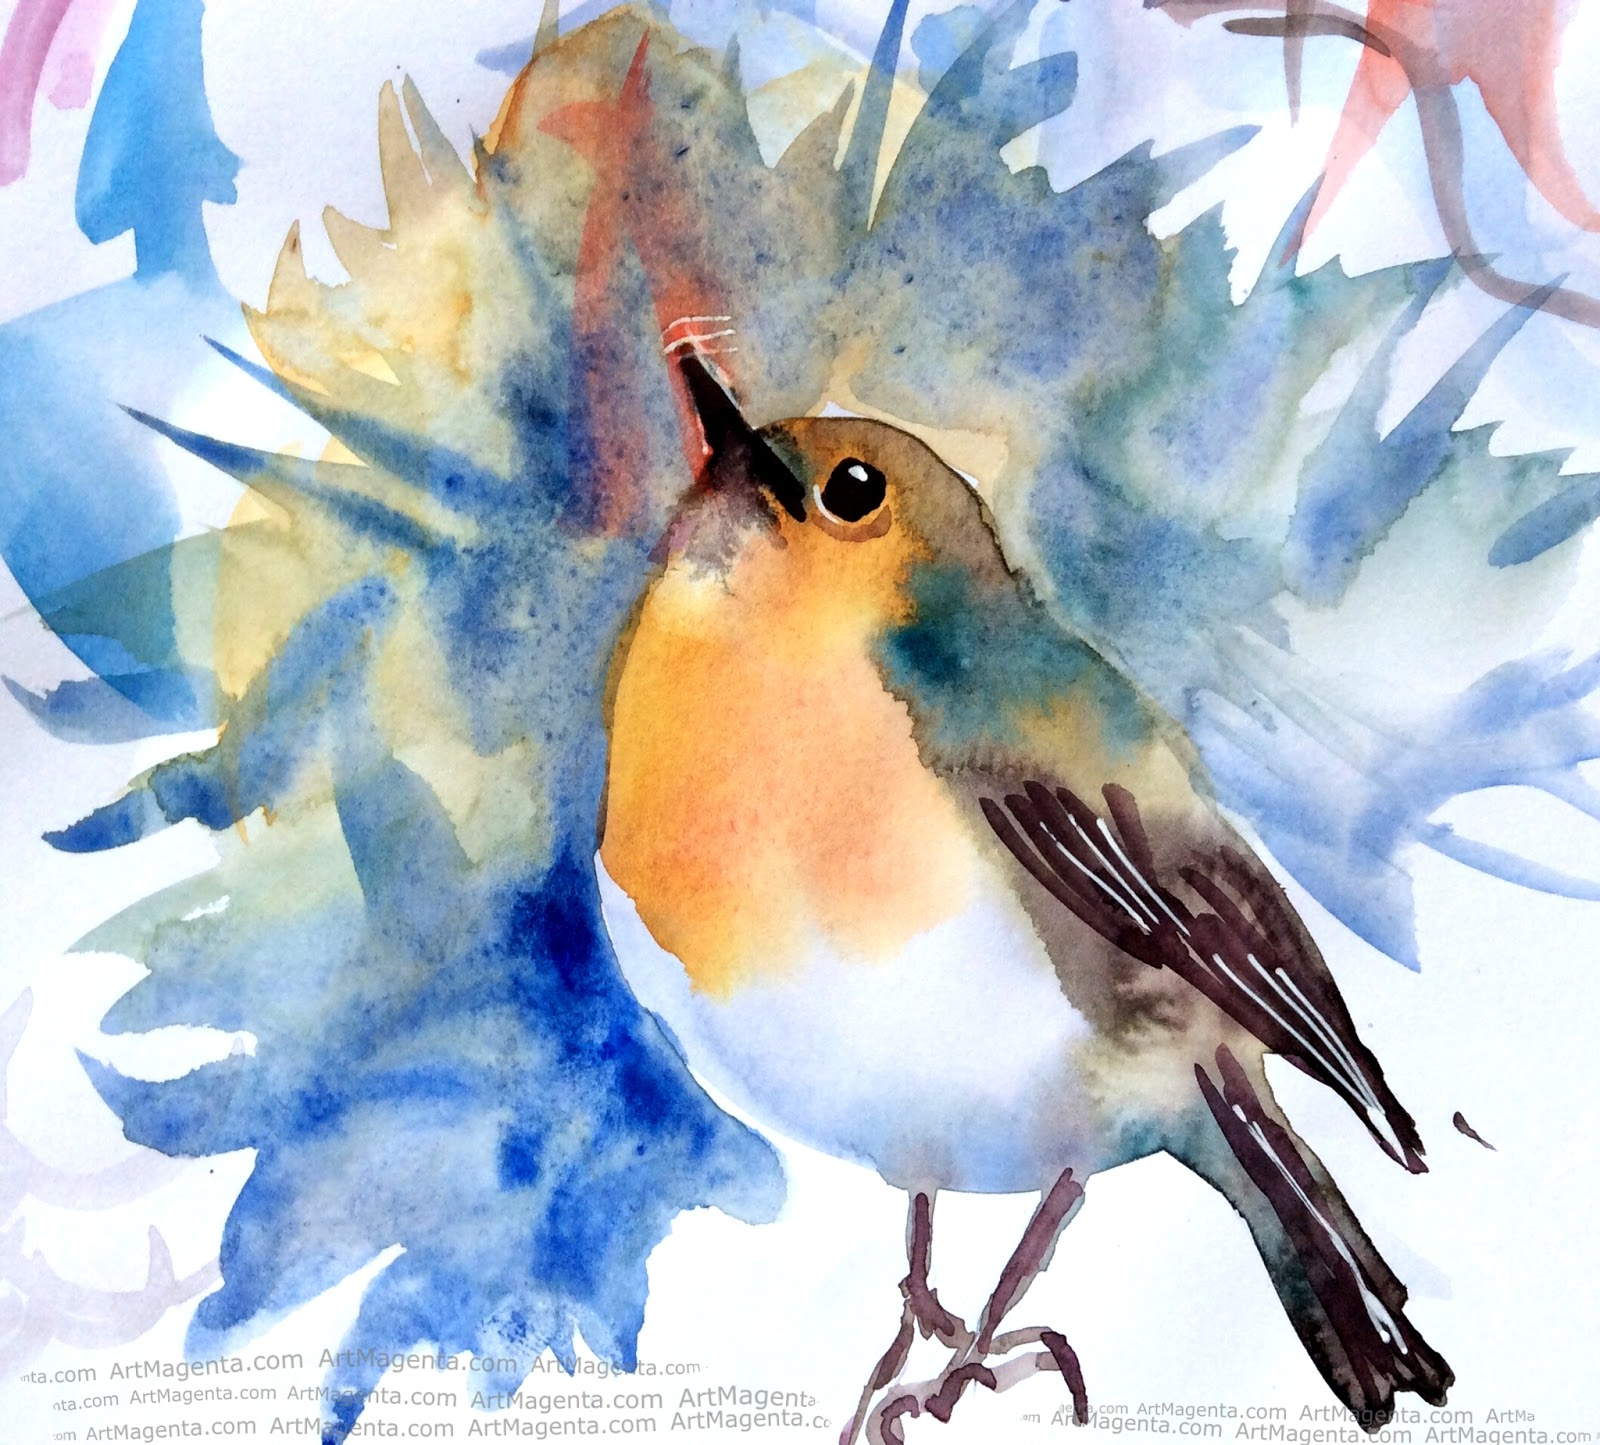 Robin water color sketch painting. Bird art drawing by illustrator Artmagenta